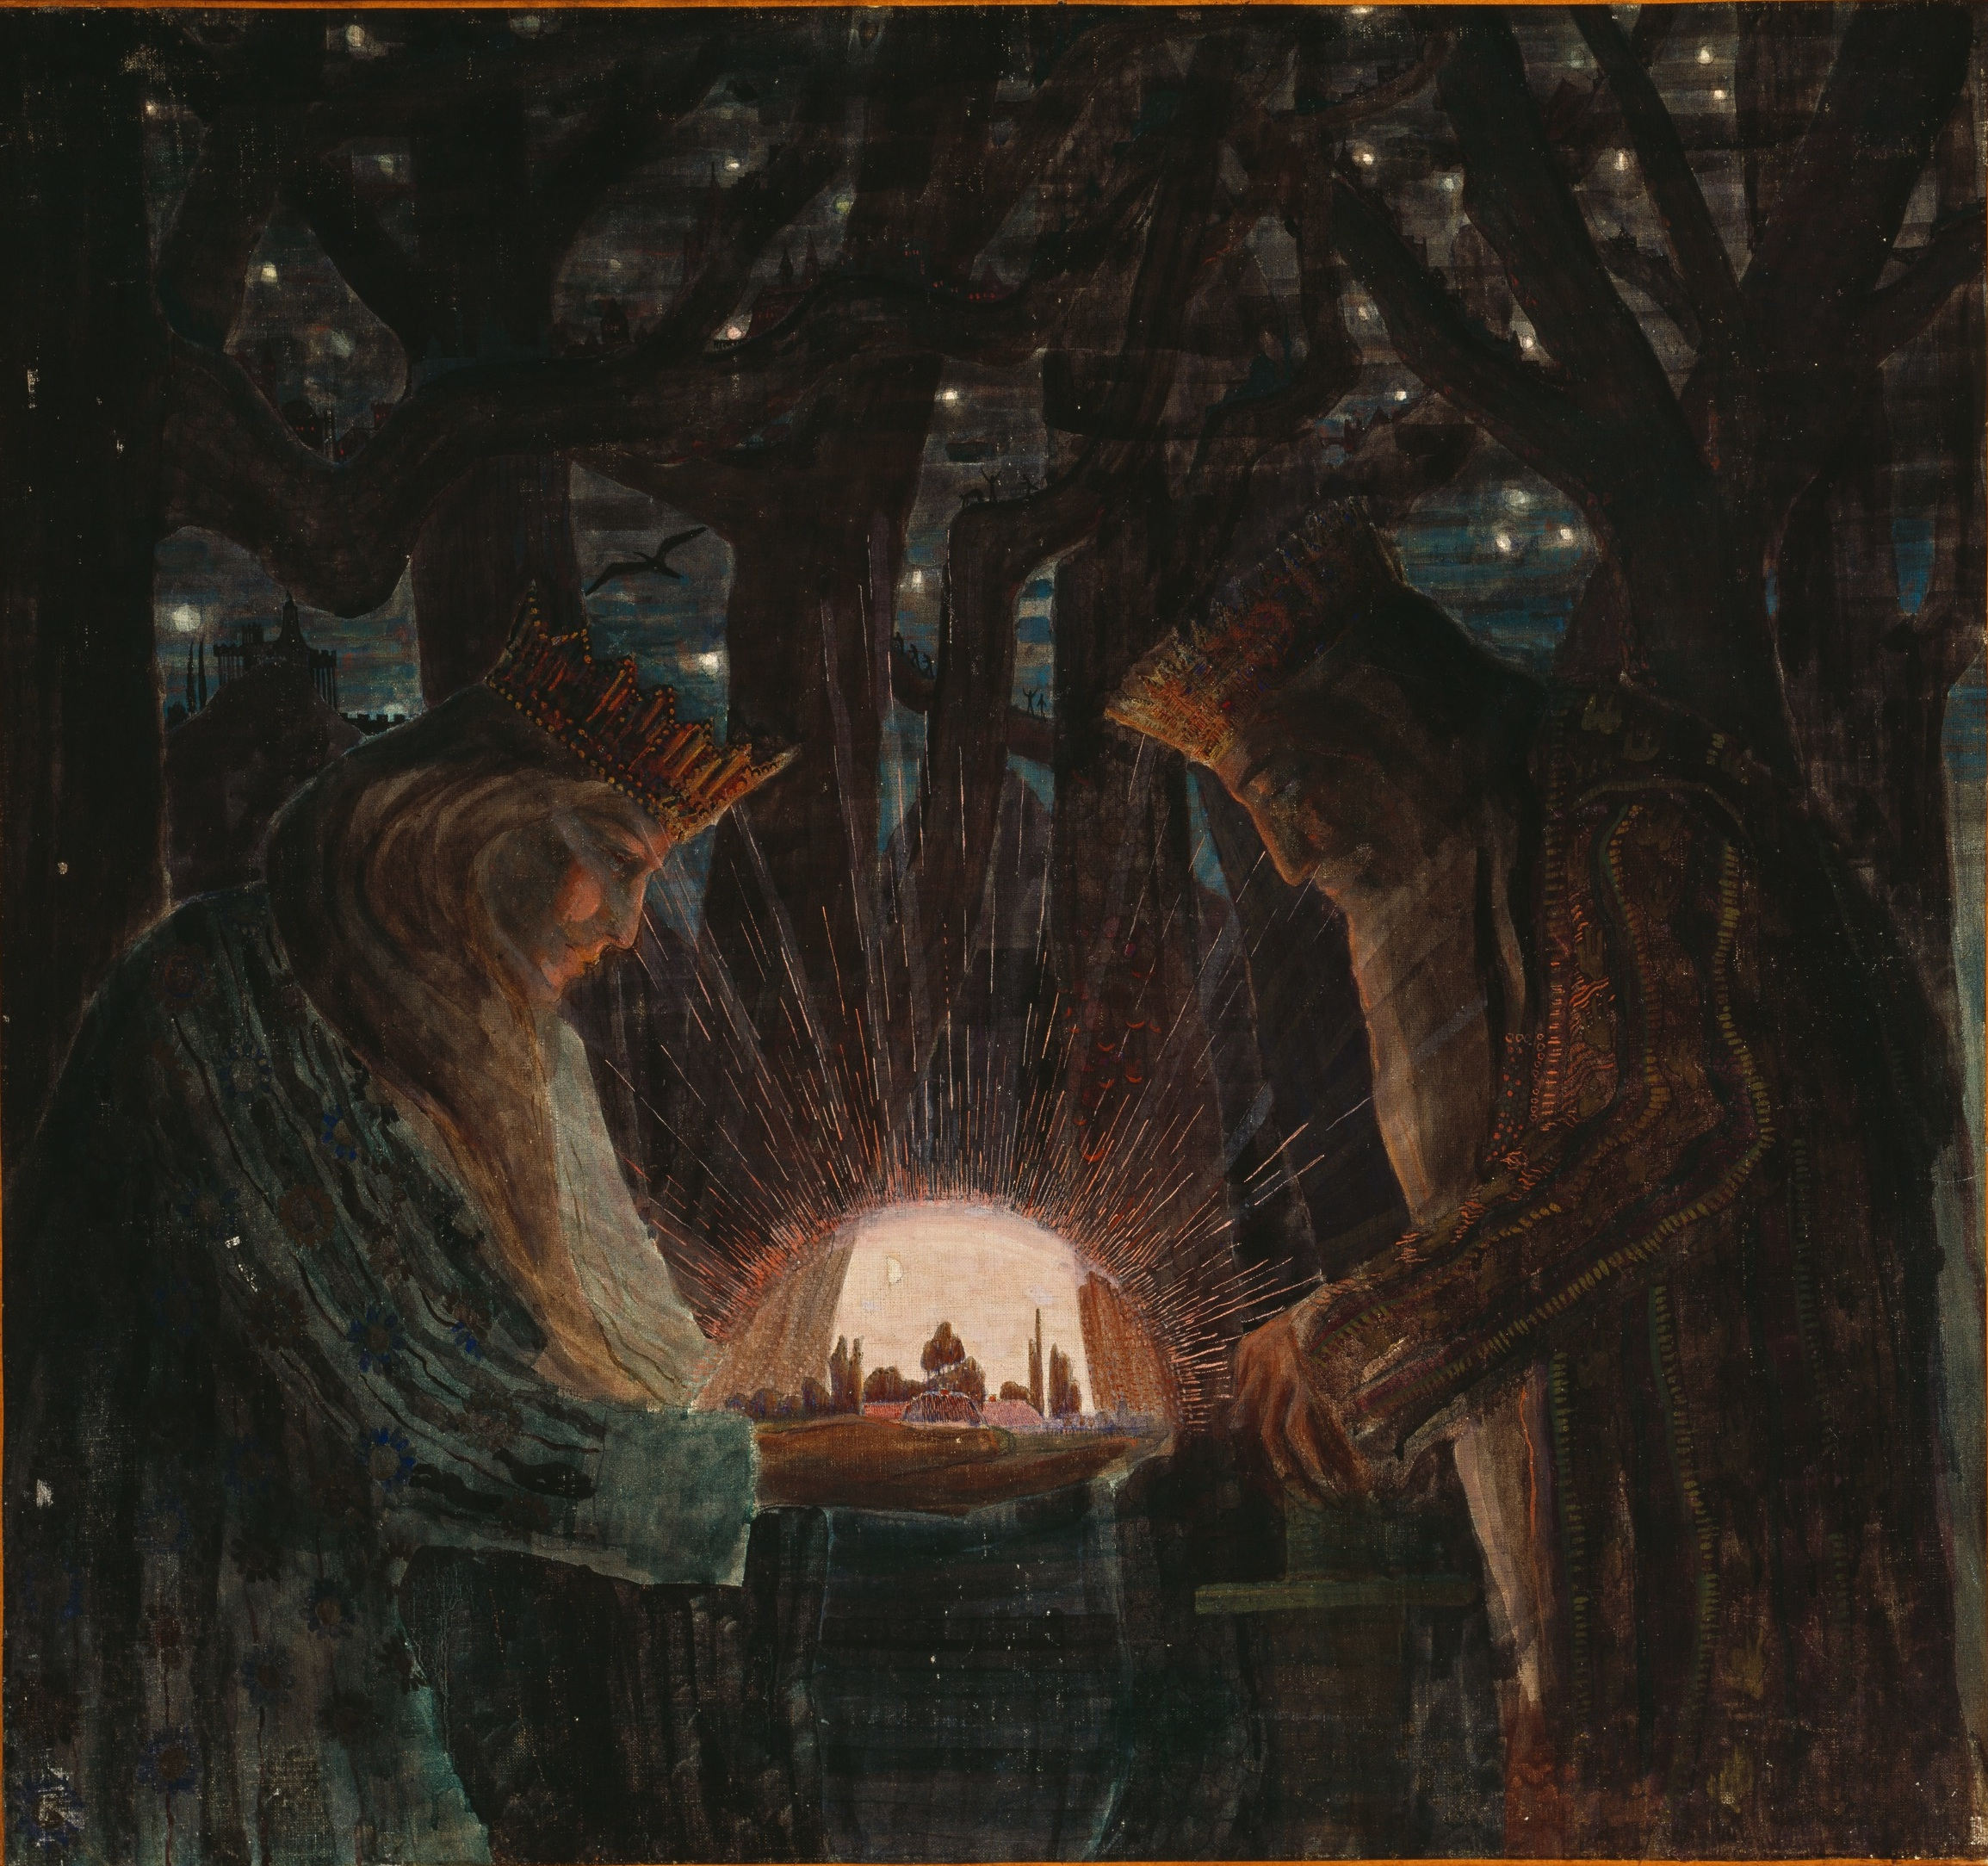 A 1909 Illustration Of Kings In Dark Forest